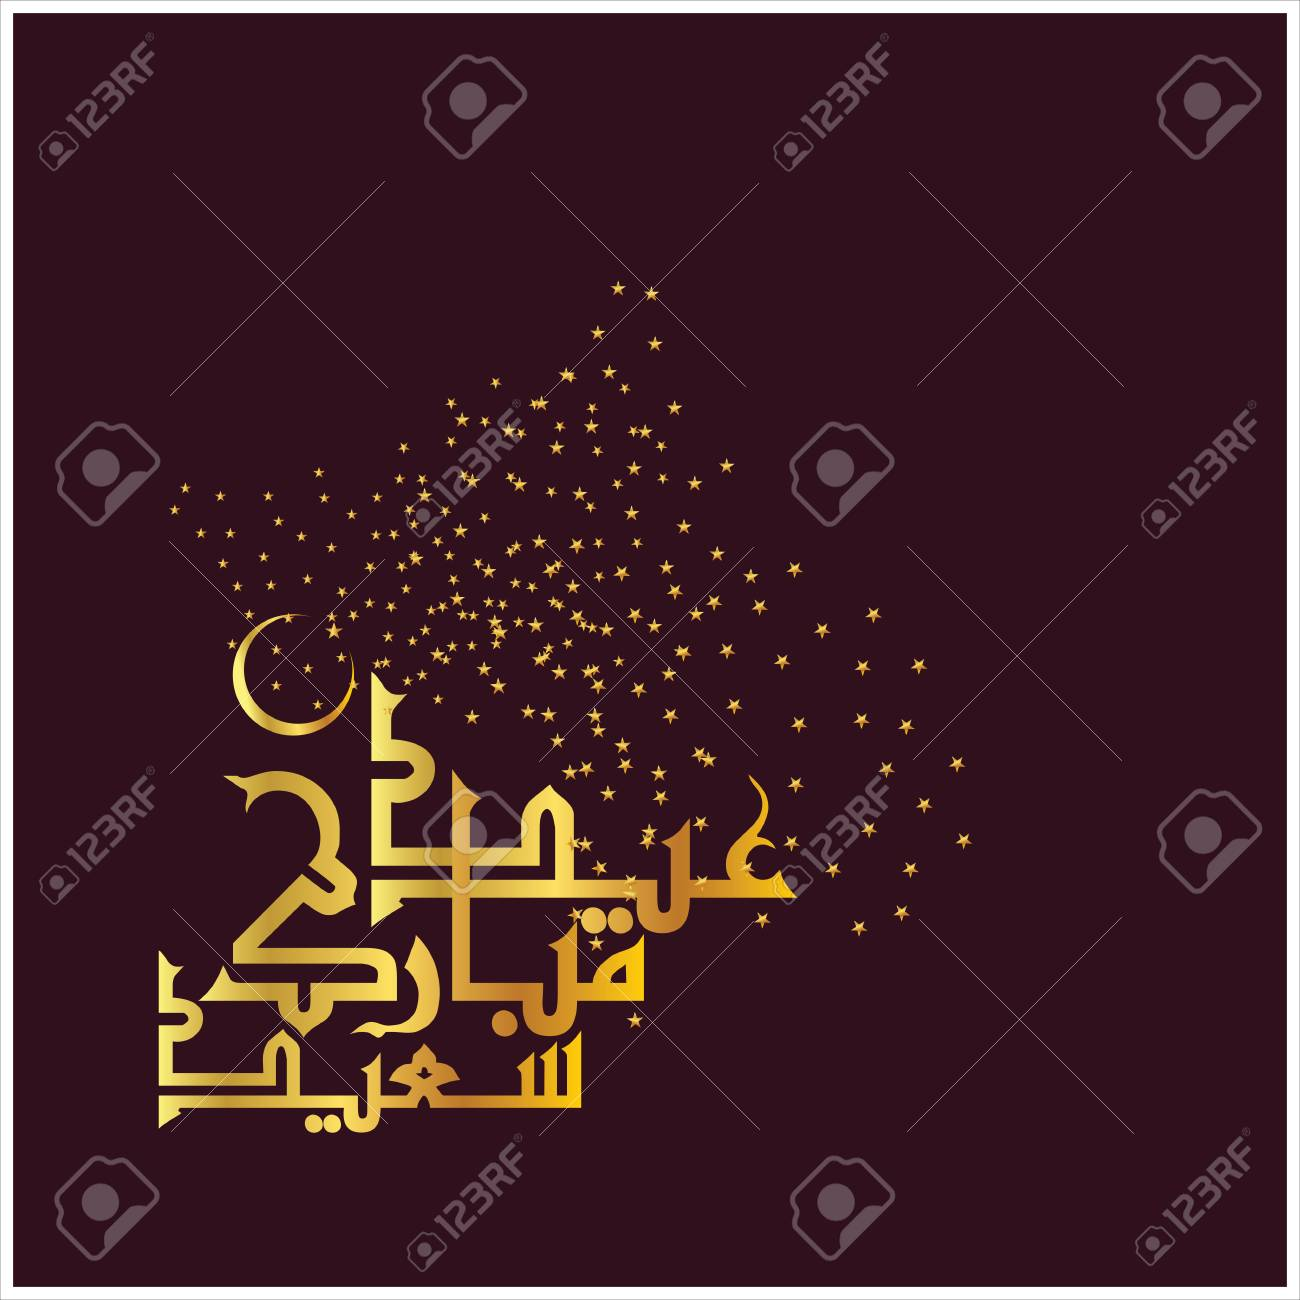 Happy Eid Mubarak Arabic Calligraphy For Greeting Card Muslims